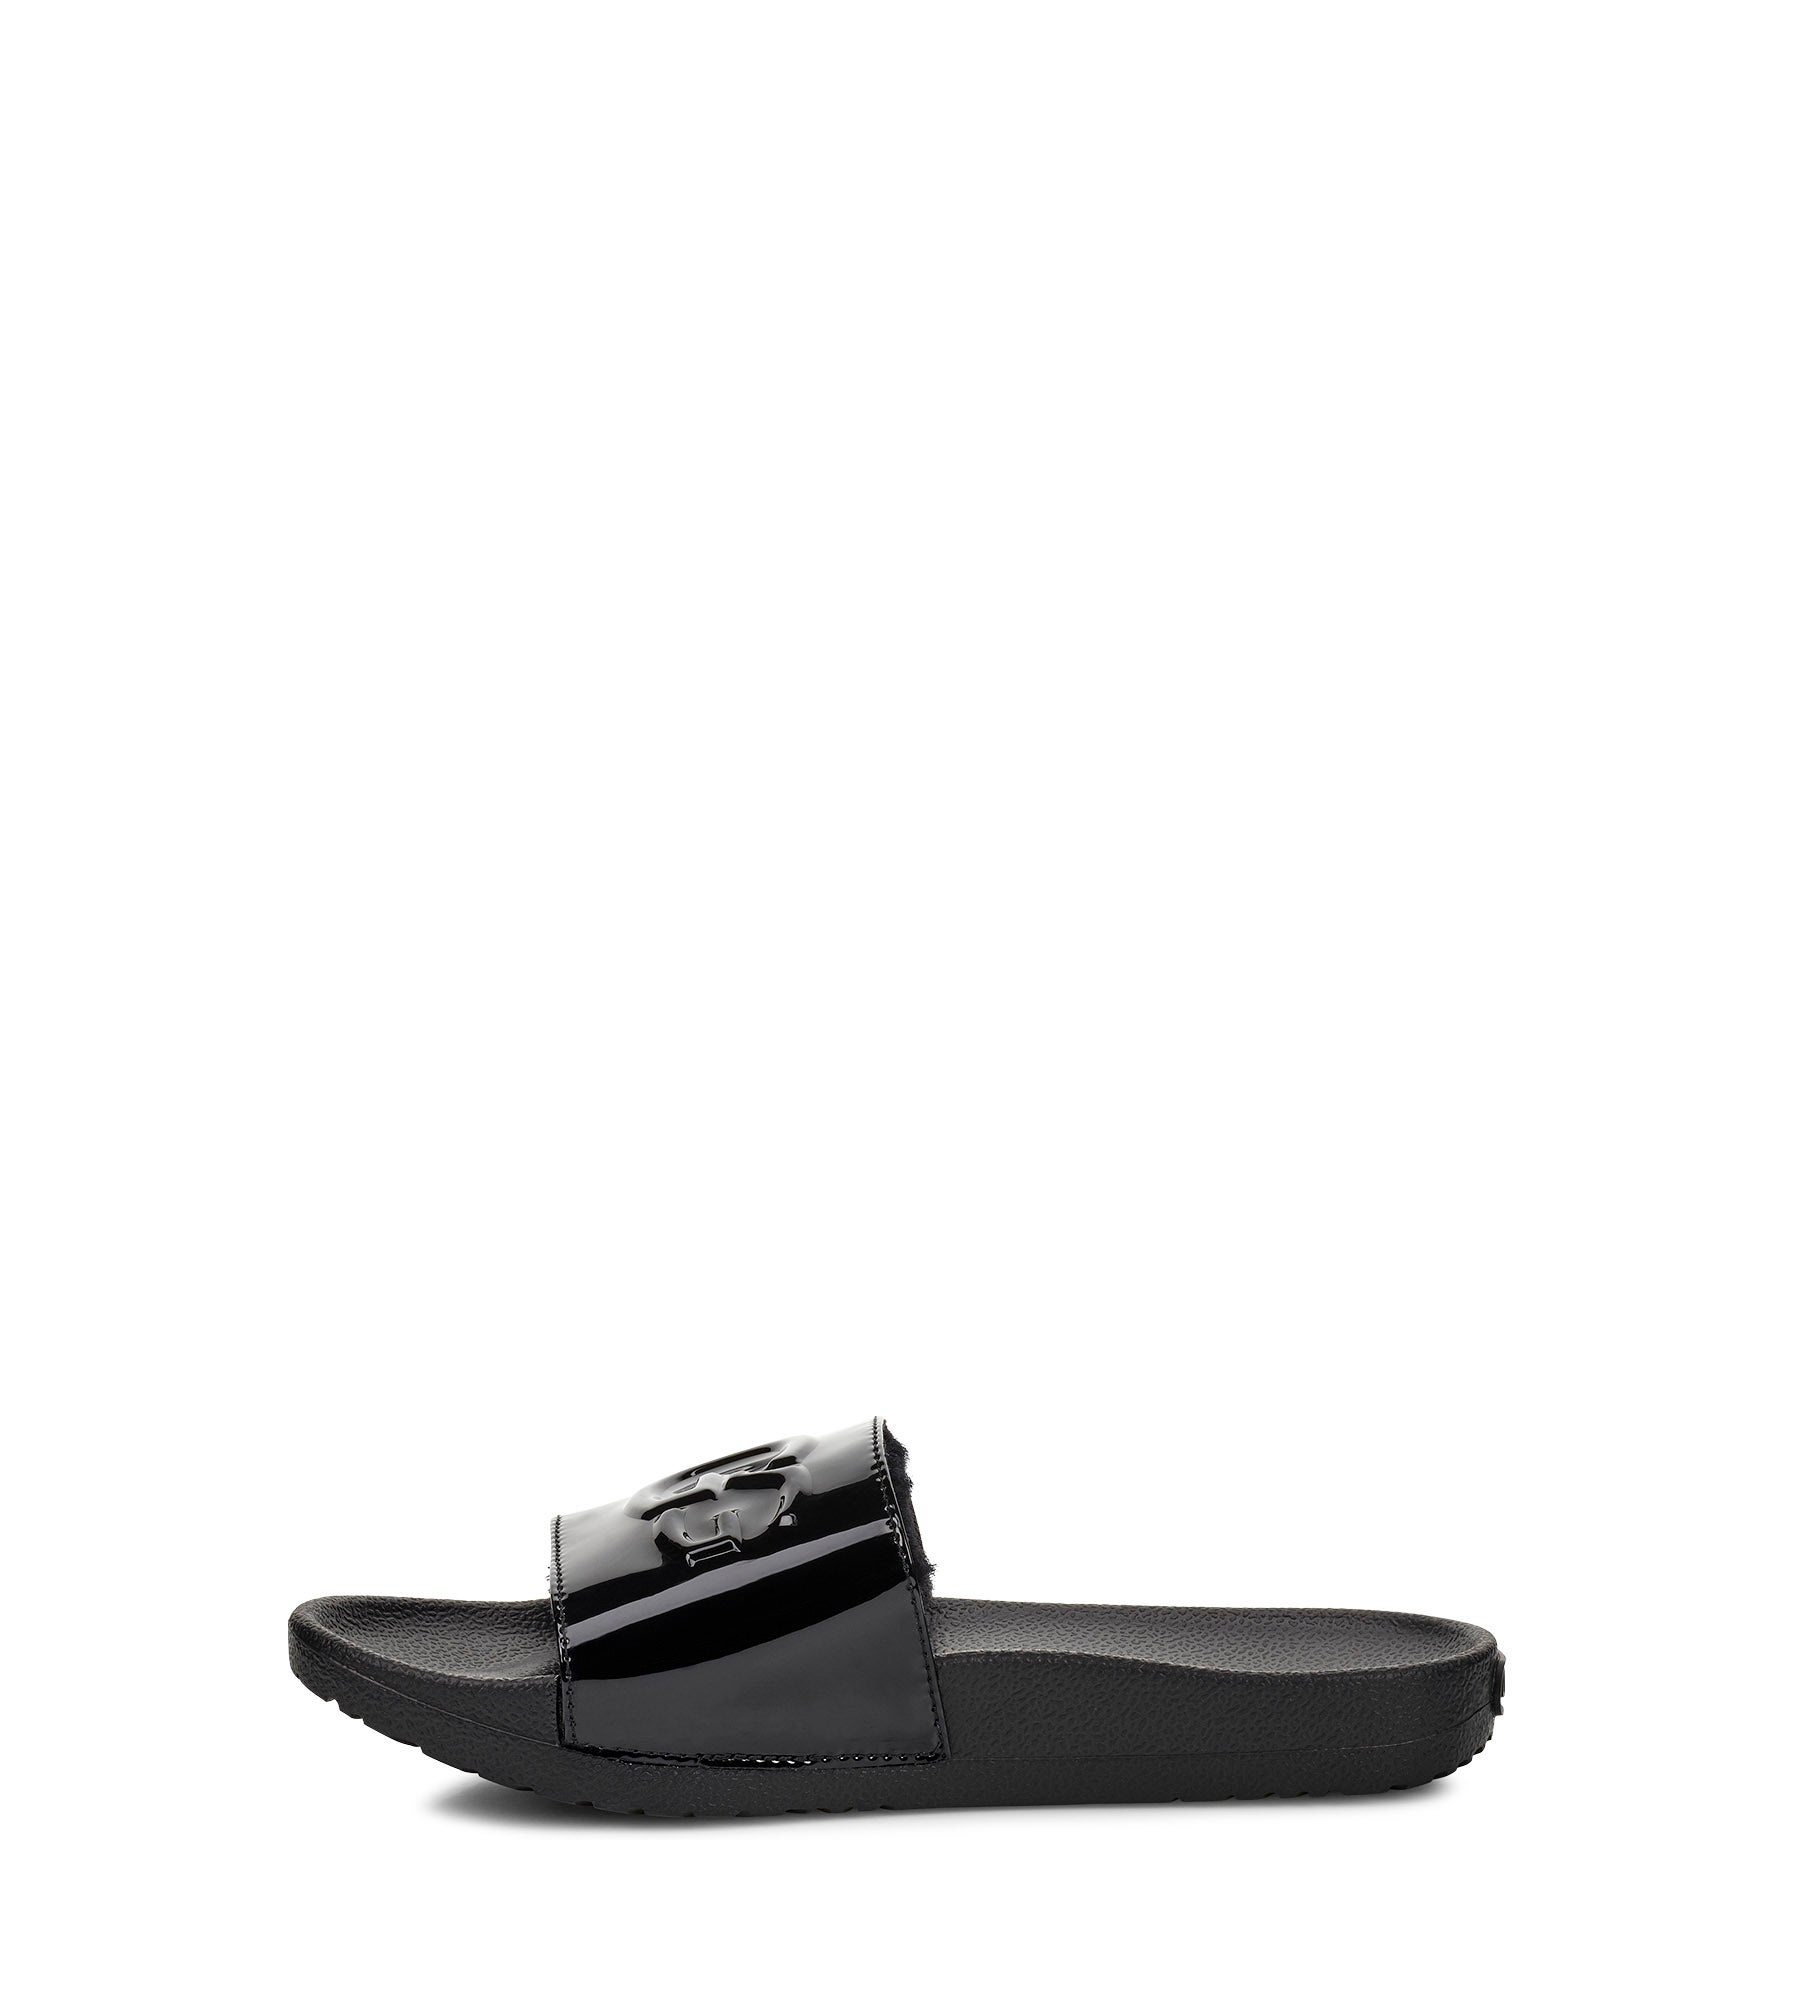 7005b53003a Women's ROYALE GRAPHIC METALLIC black sandals